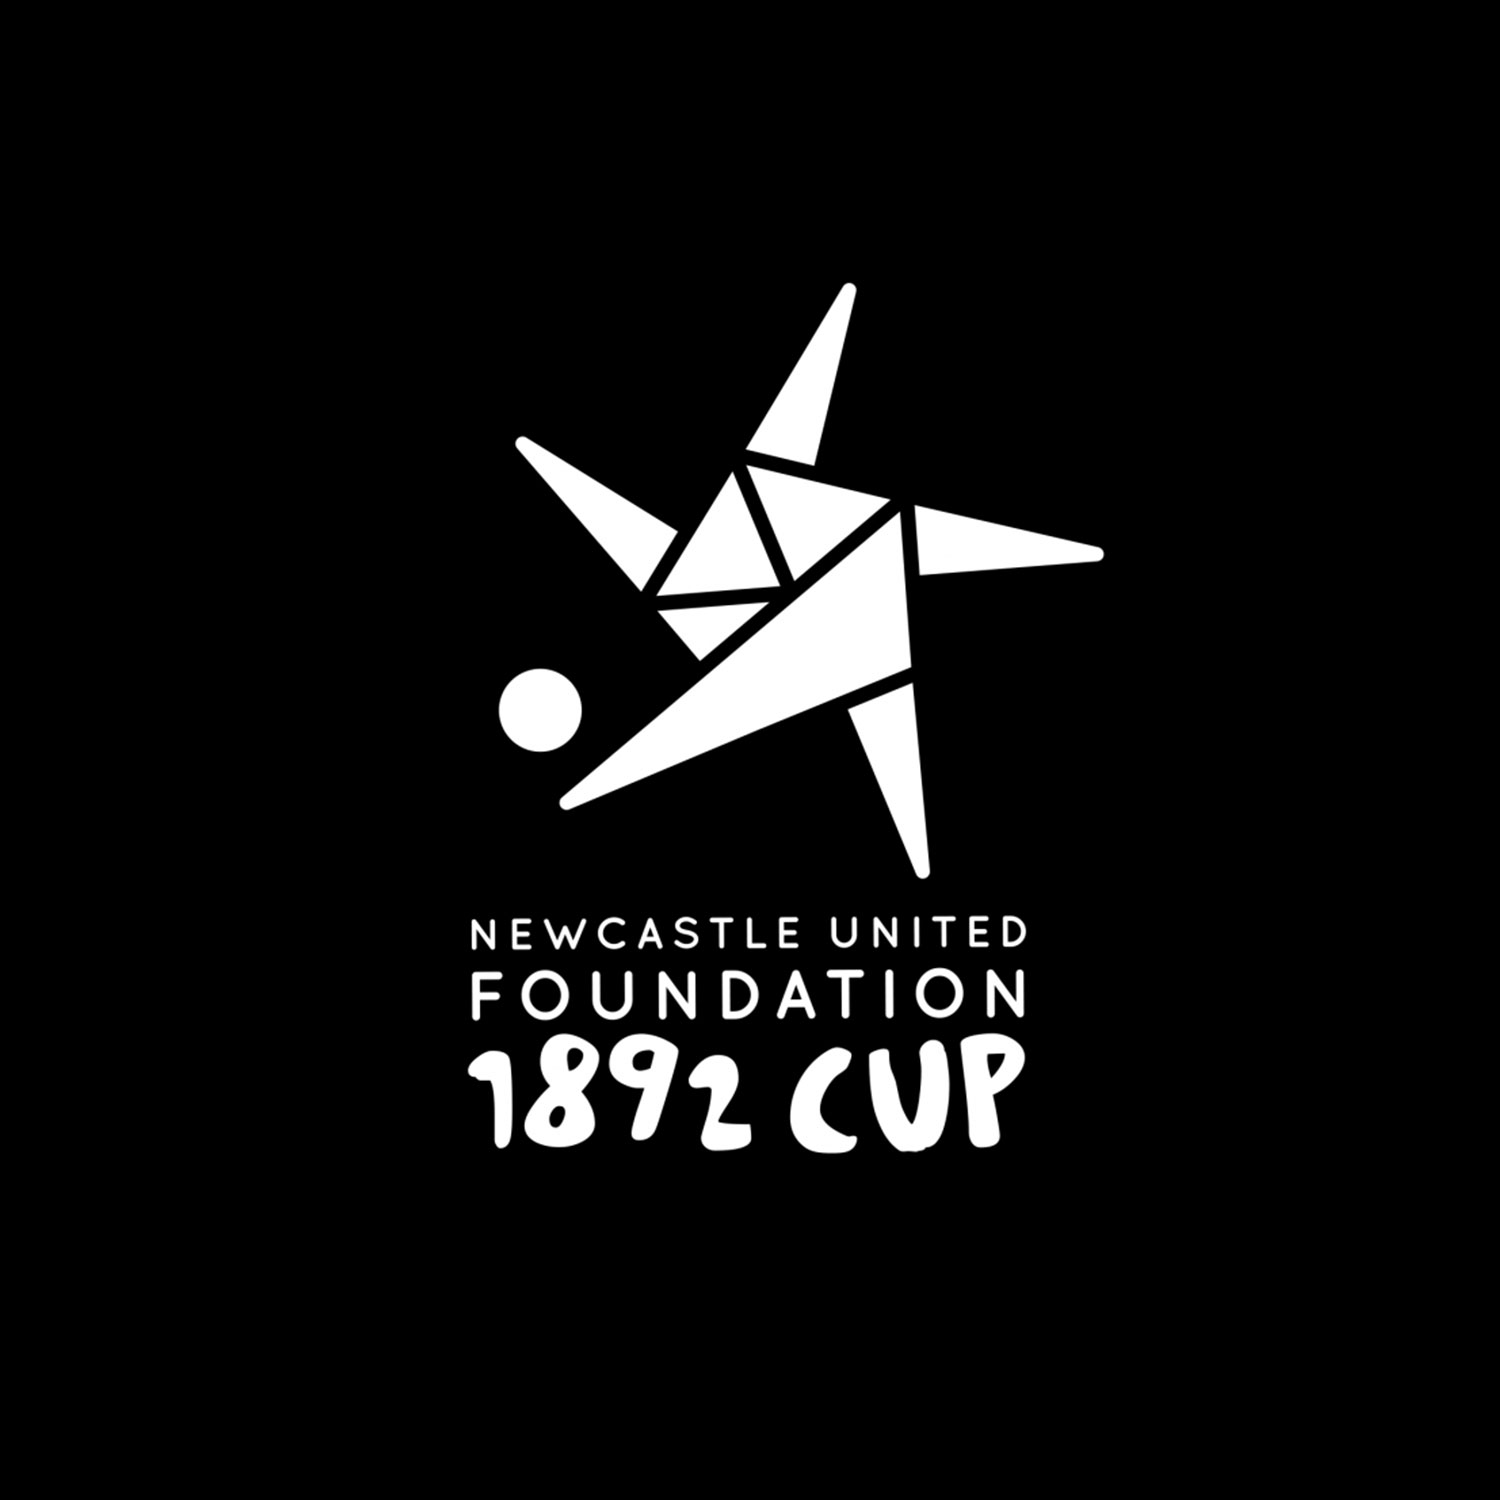 Charity brand identity for Newcastle United Foundation cup by Altogether Creative.